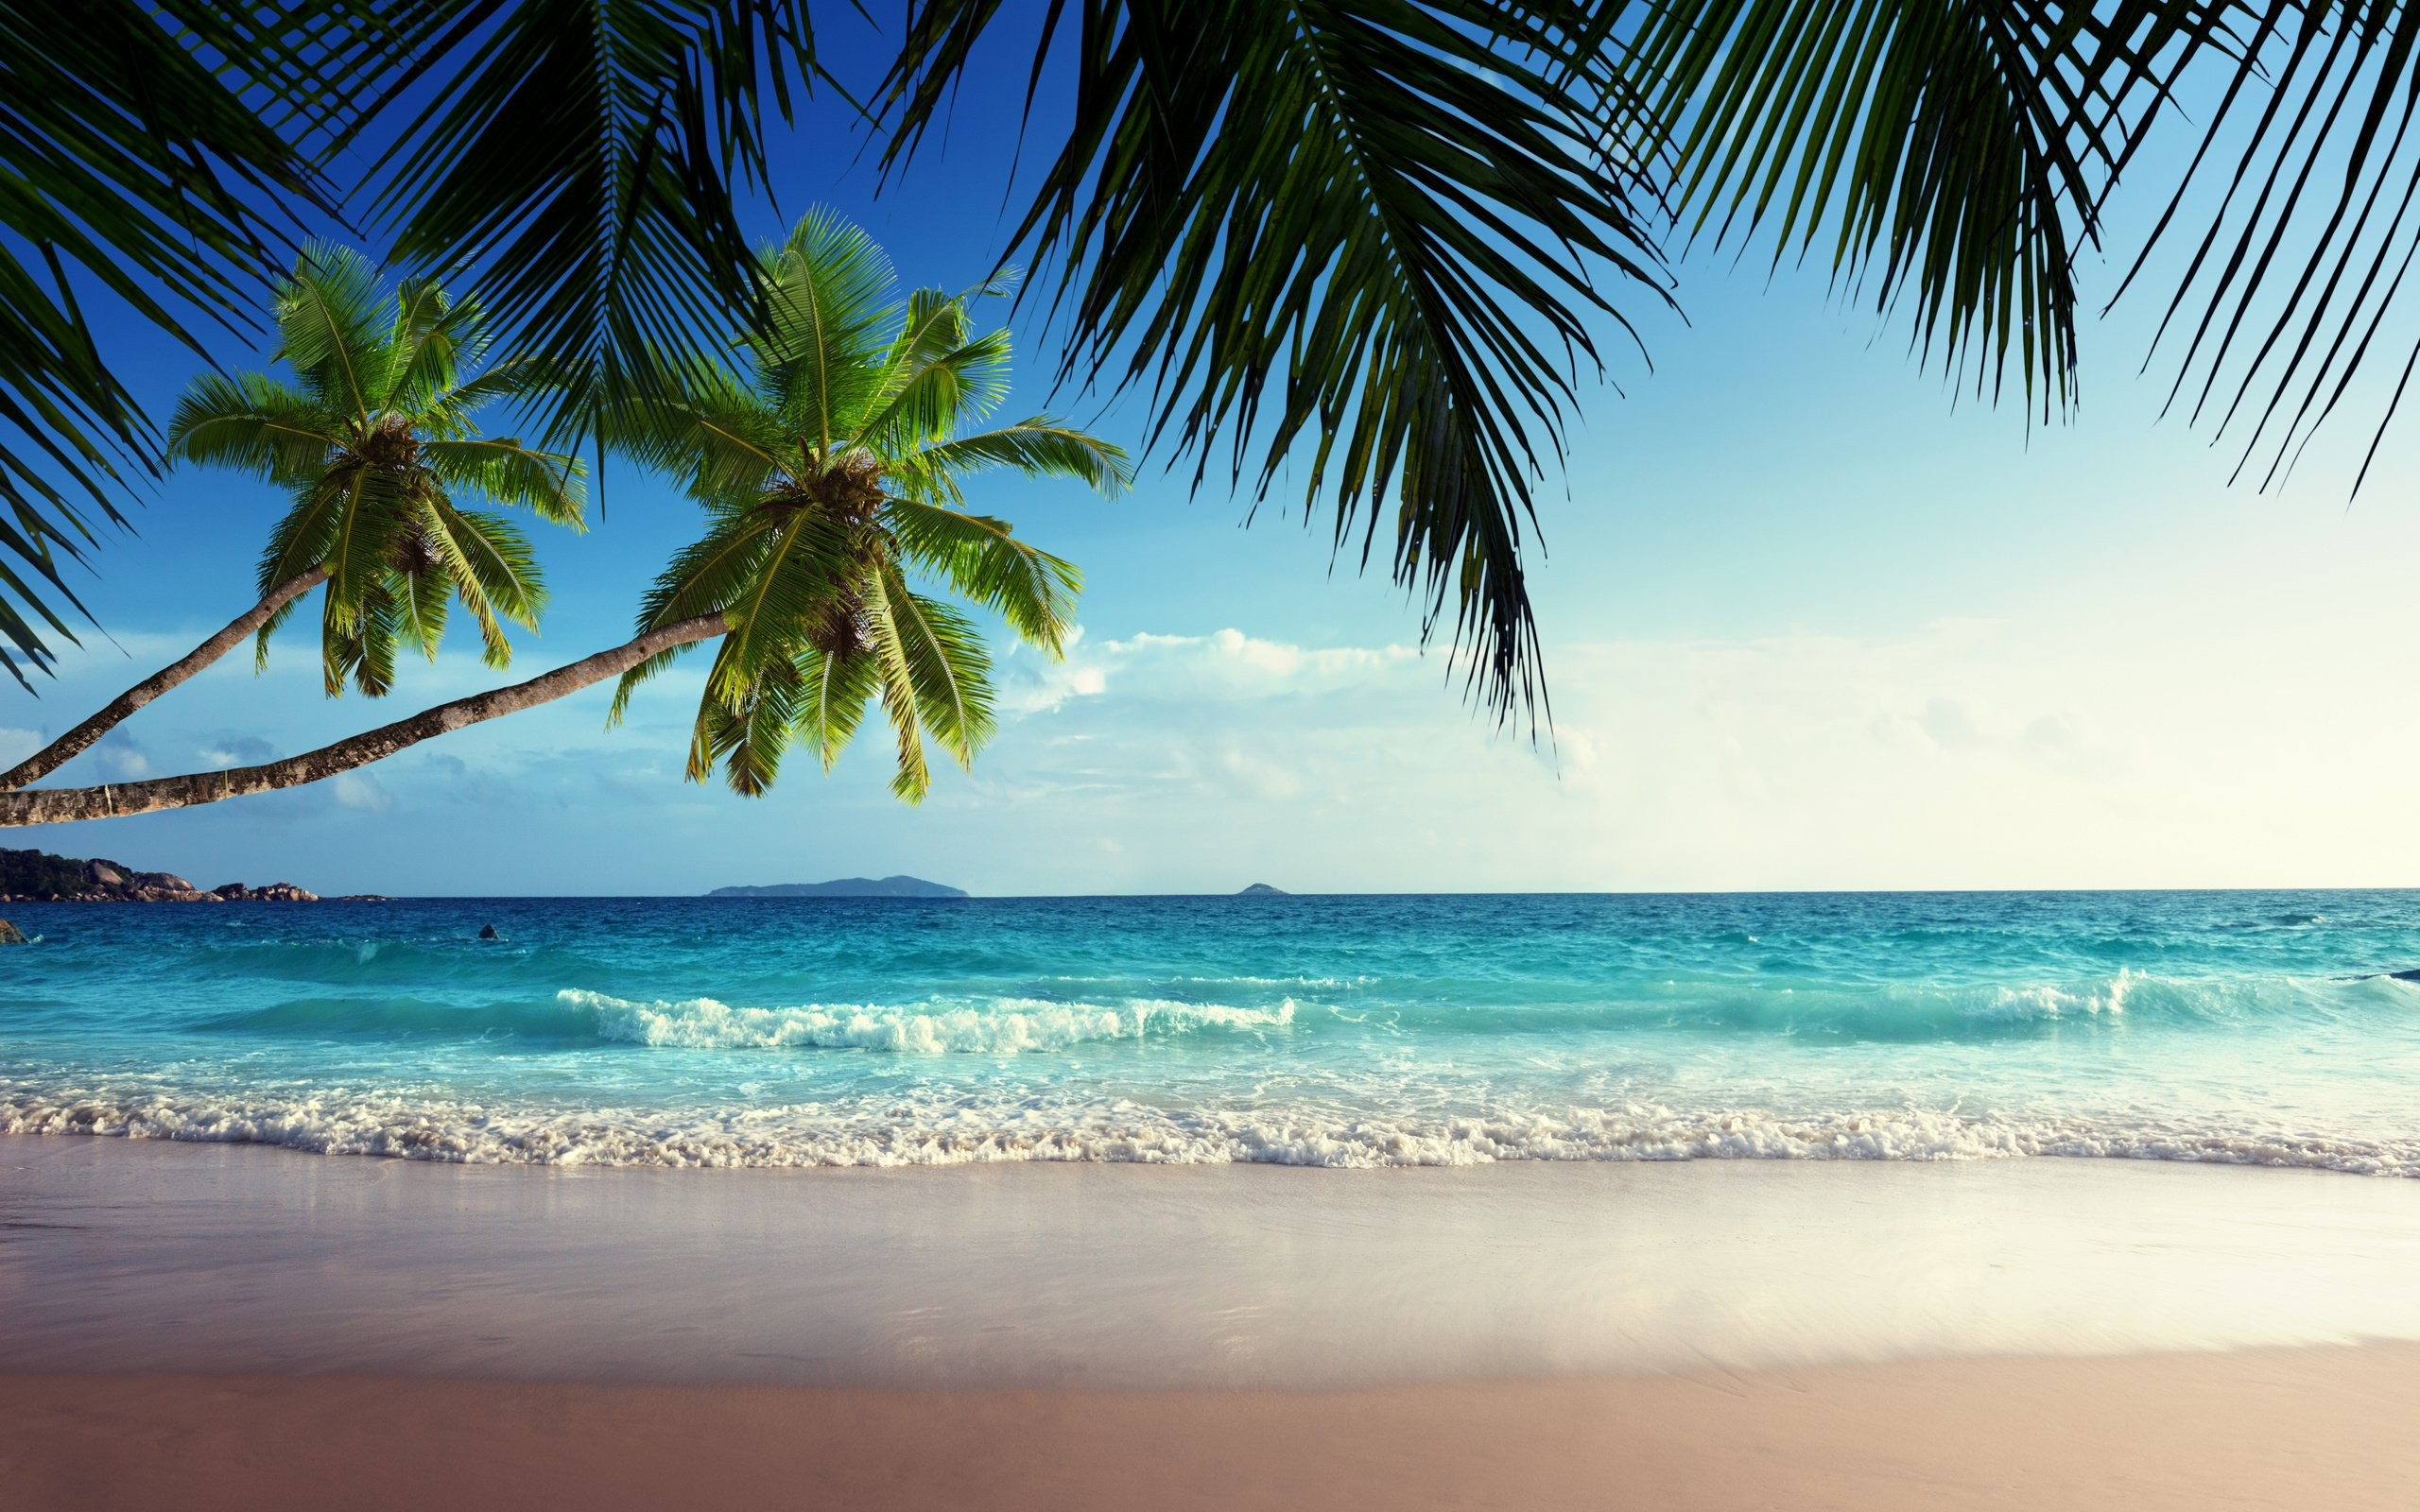 tropical beach desktop backgrounds ·①